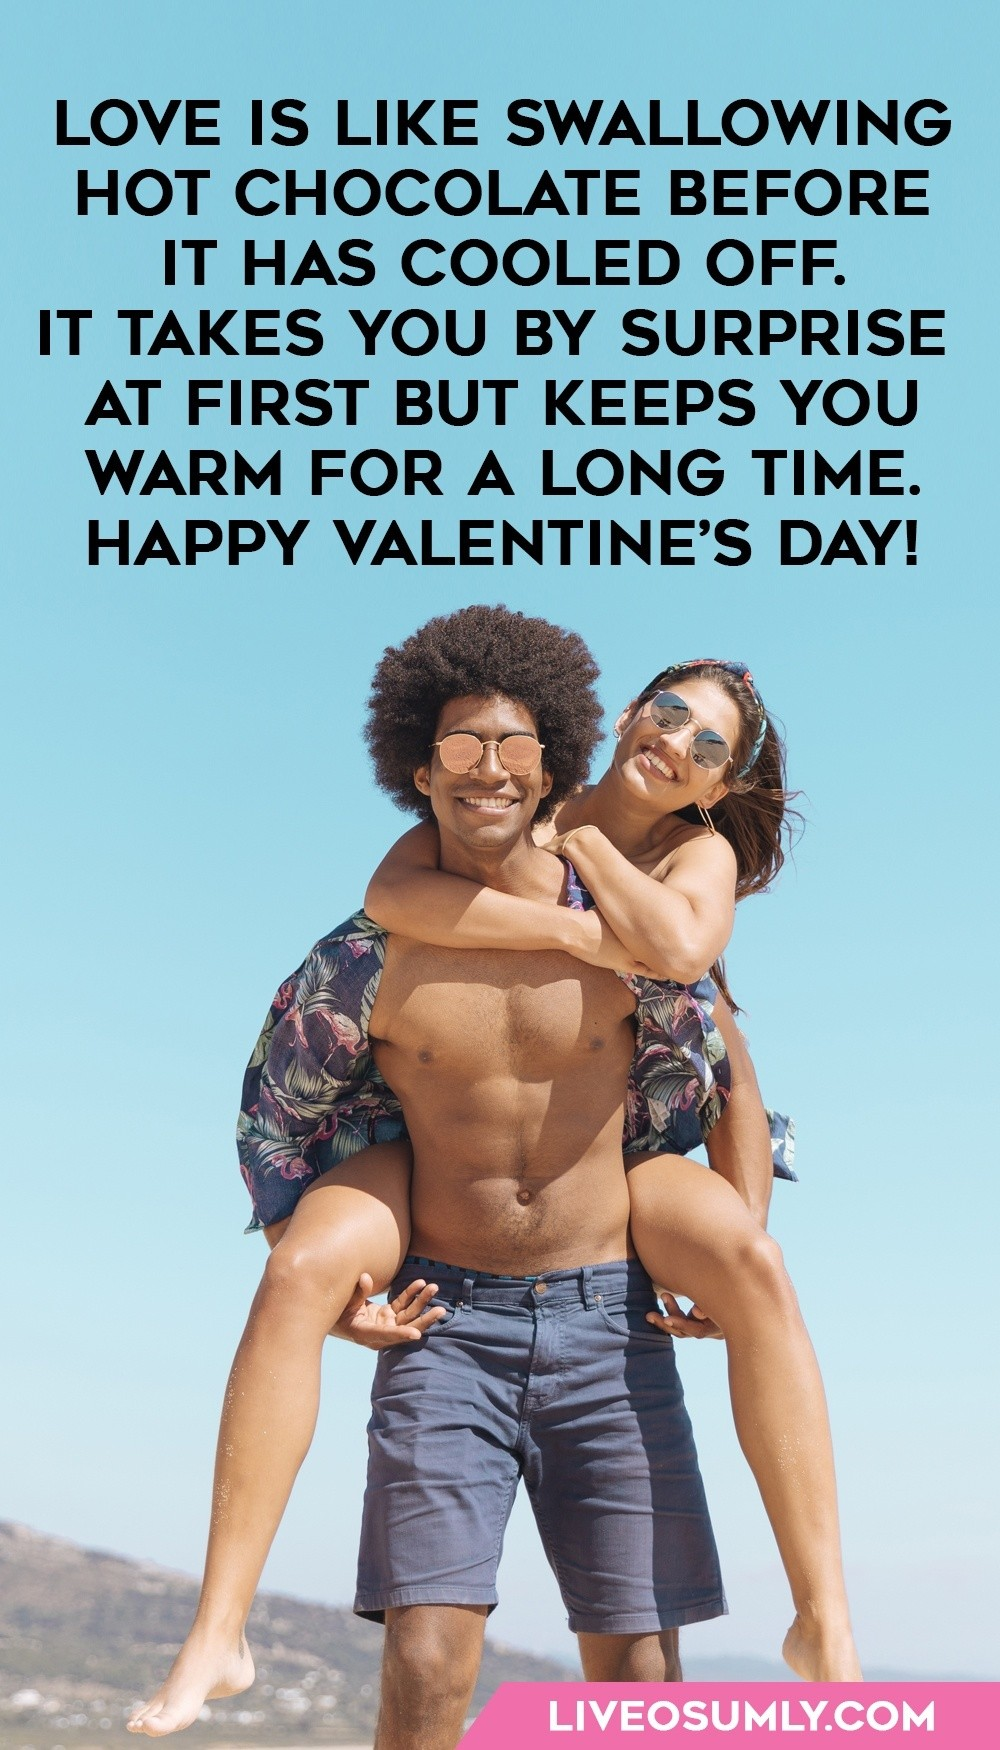 24. Quotes about Valentines Day